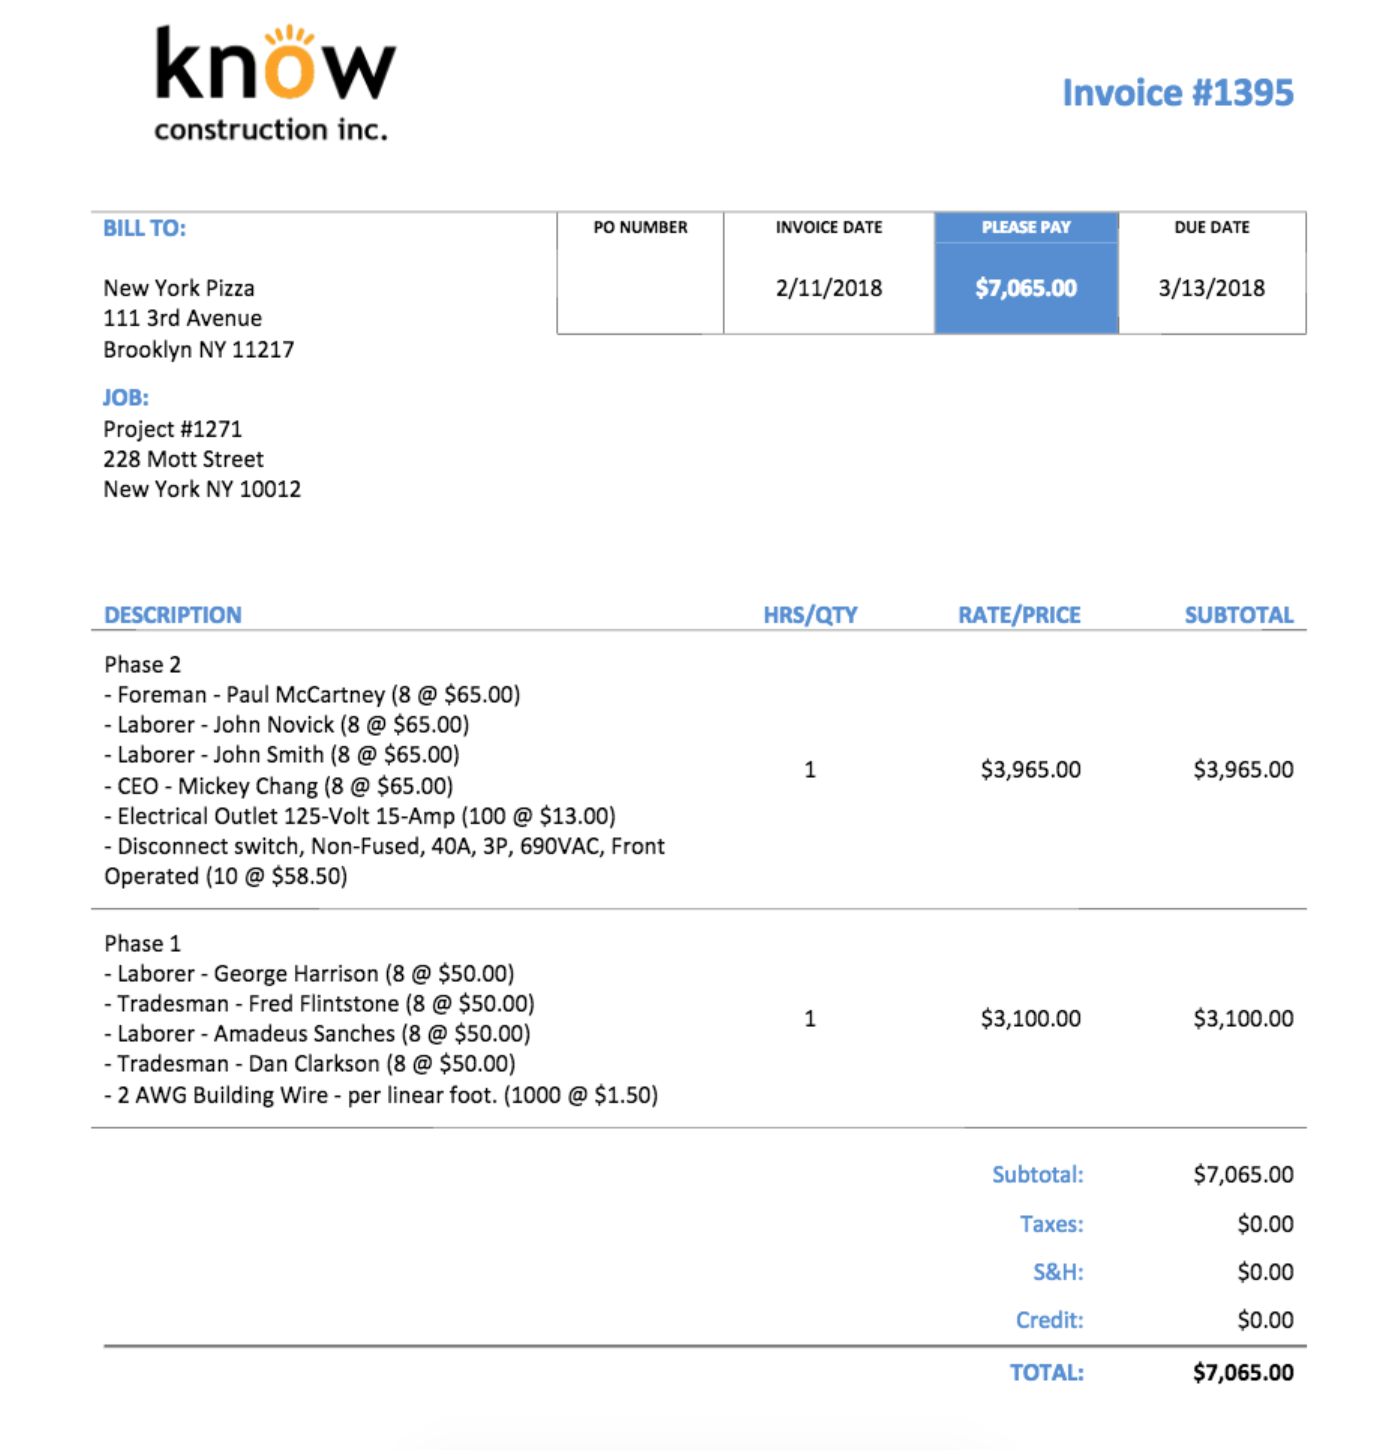 Screen-Shot-2018-02-11-at-3.49.48-PM Grouping Options on Cost Plus Invoices